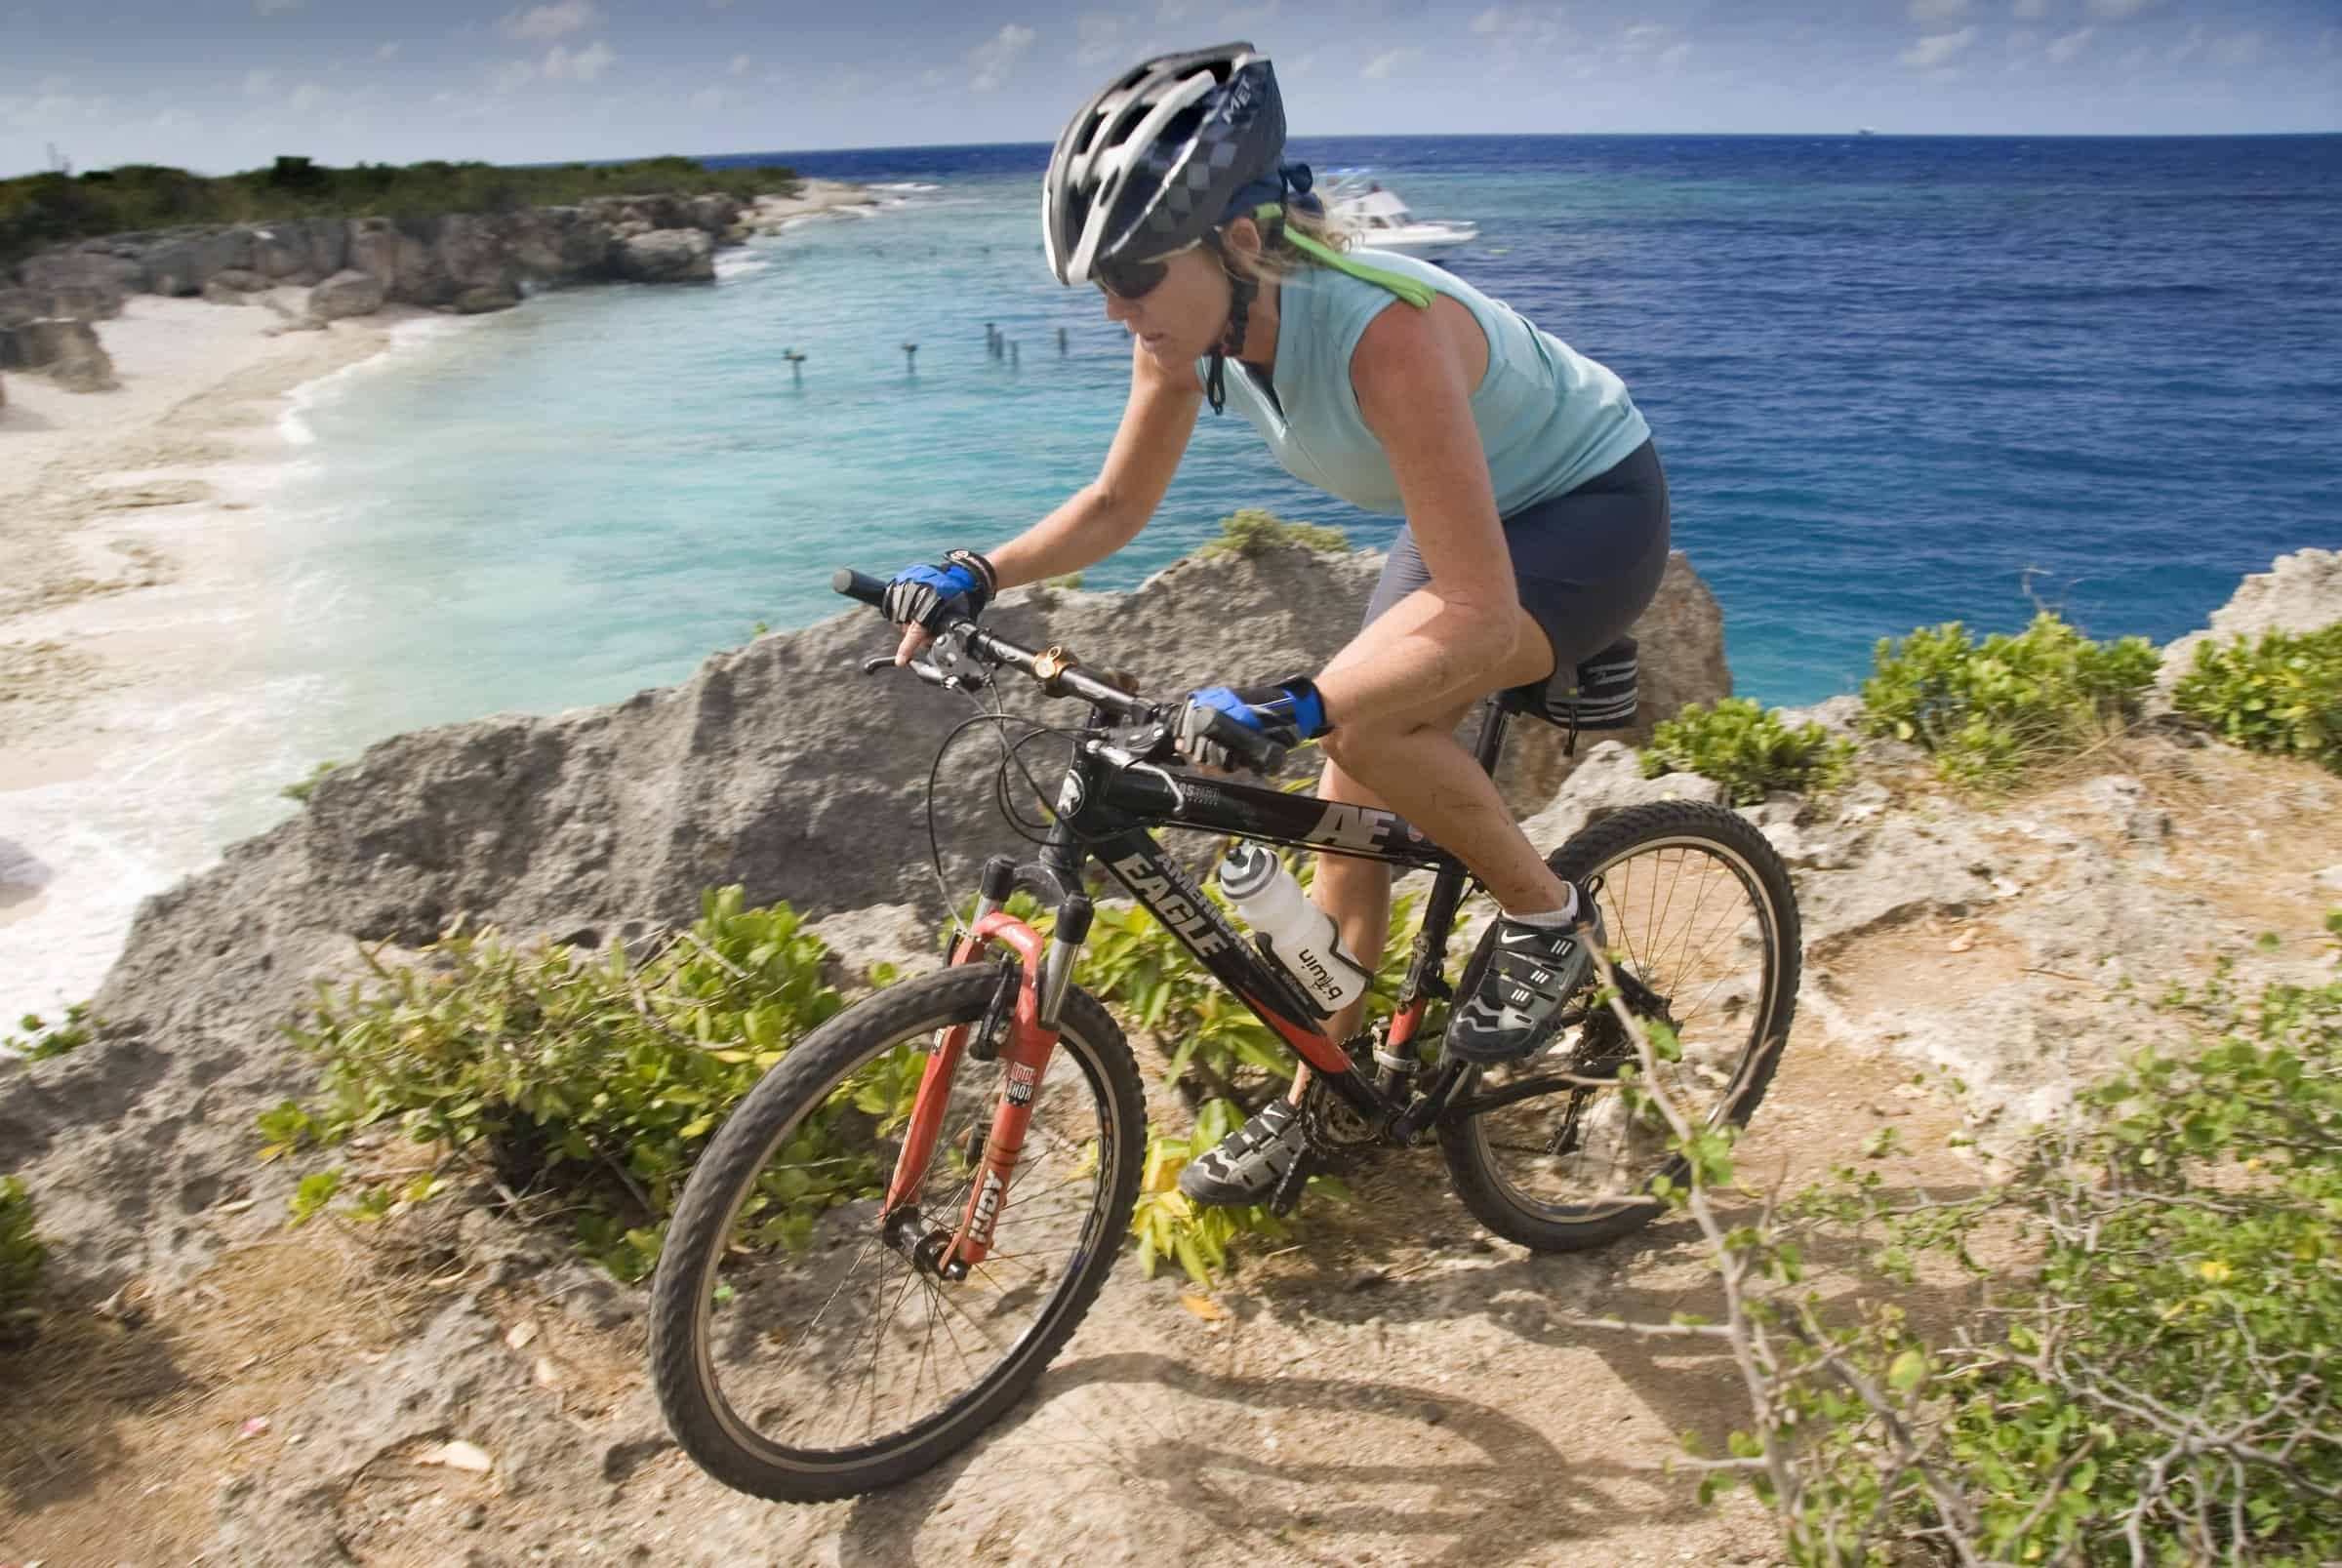 Mountain Bike Curacao-on the Caribbean island of Curacao, Netherlands Antilles